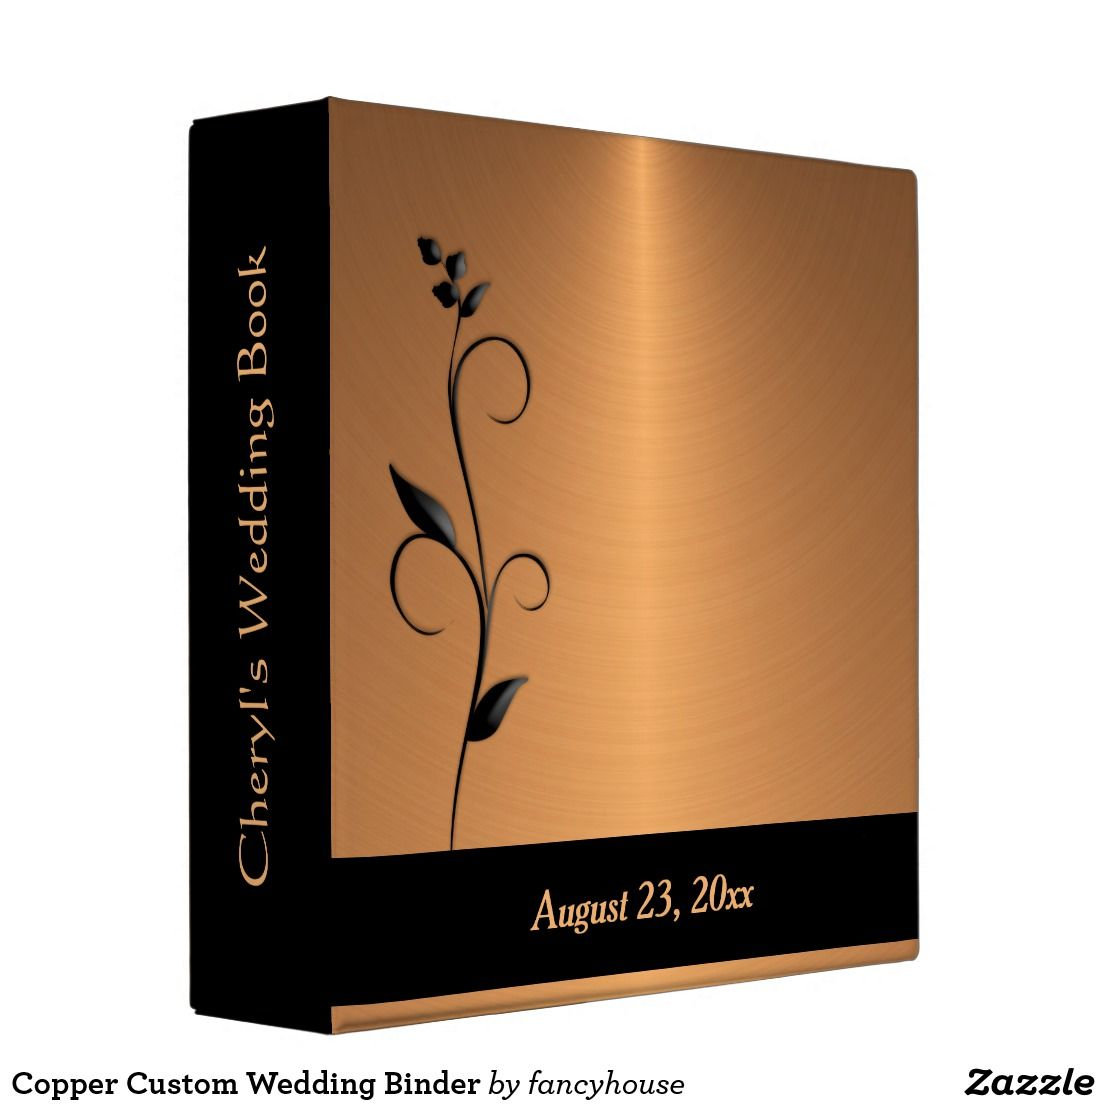 Copper Custom Wedding Binder